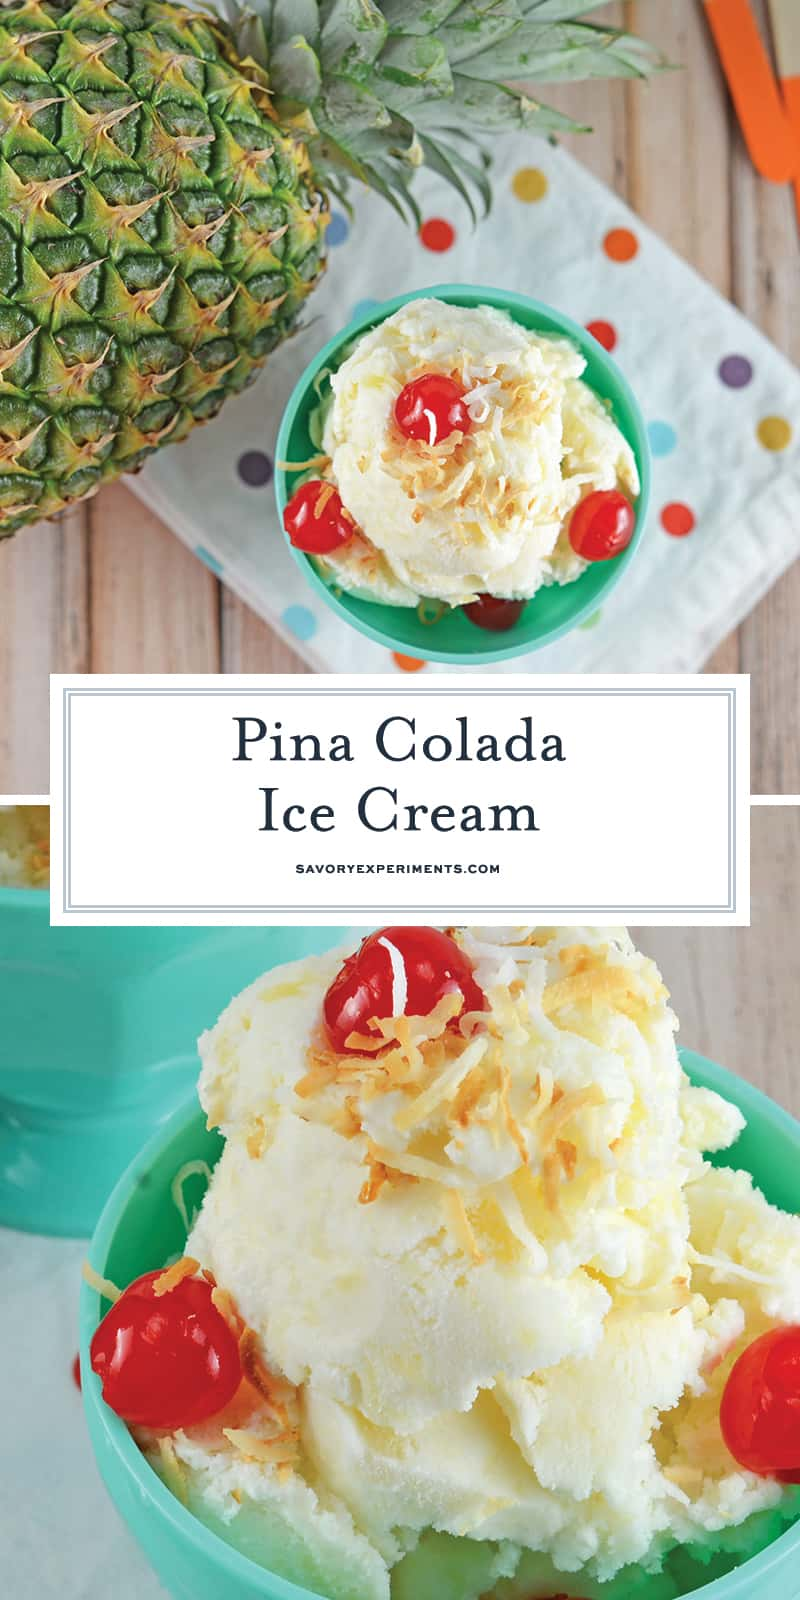 Make your favorite frozen drink into tropical Piña Colada Ice Cream! Loads of coconut and pineapple will have you feeling like you are on vacation. #icecreamrecipes #pinacoladaicecream #icecreammakerrecipe www.savoryexperiments.com